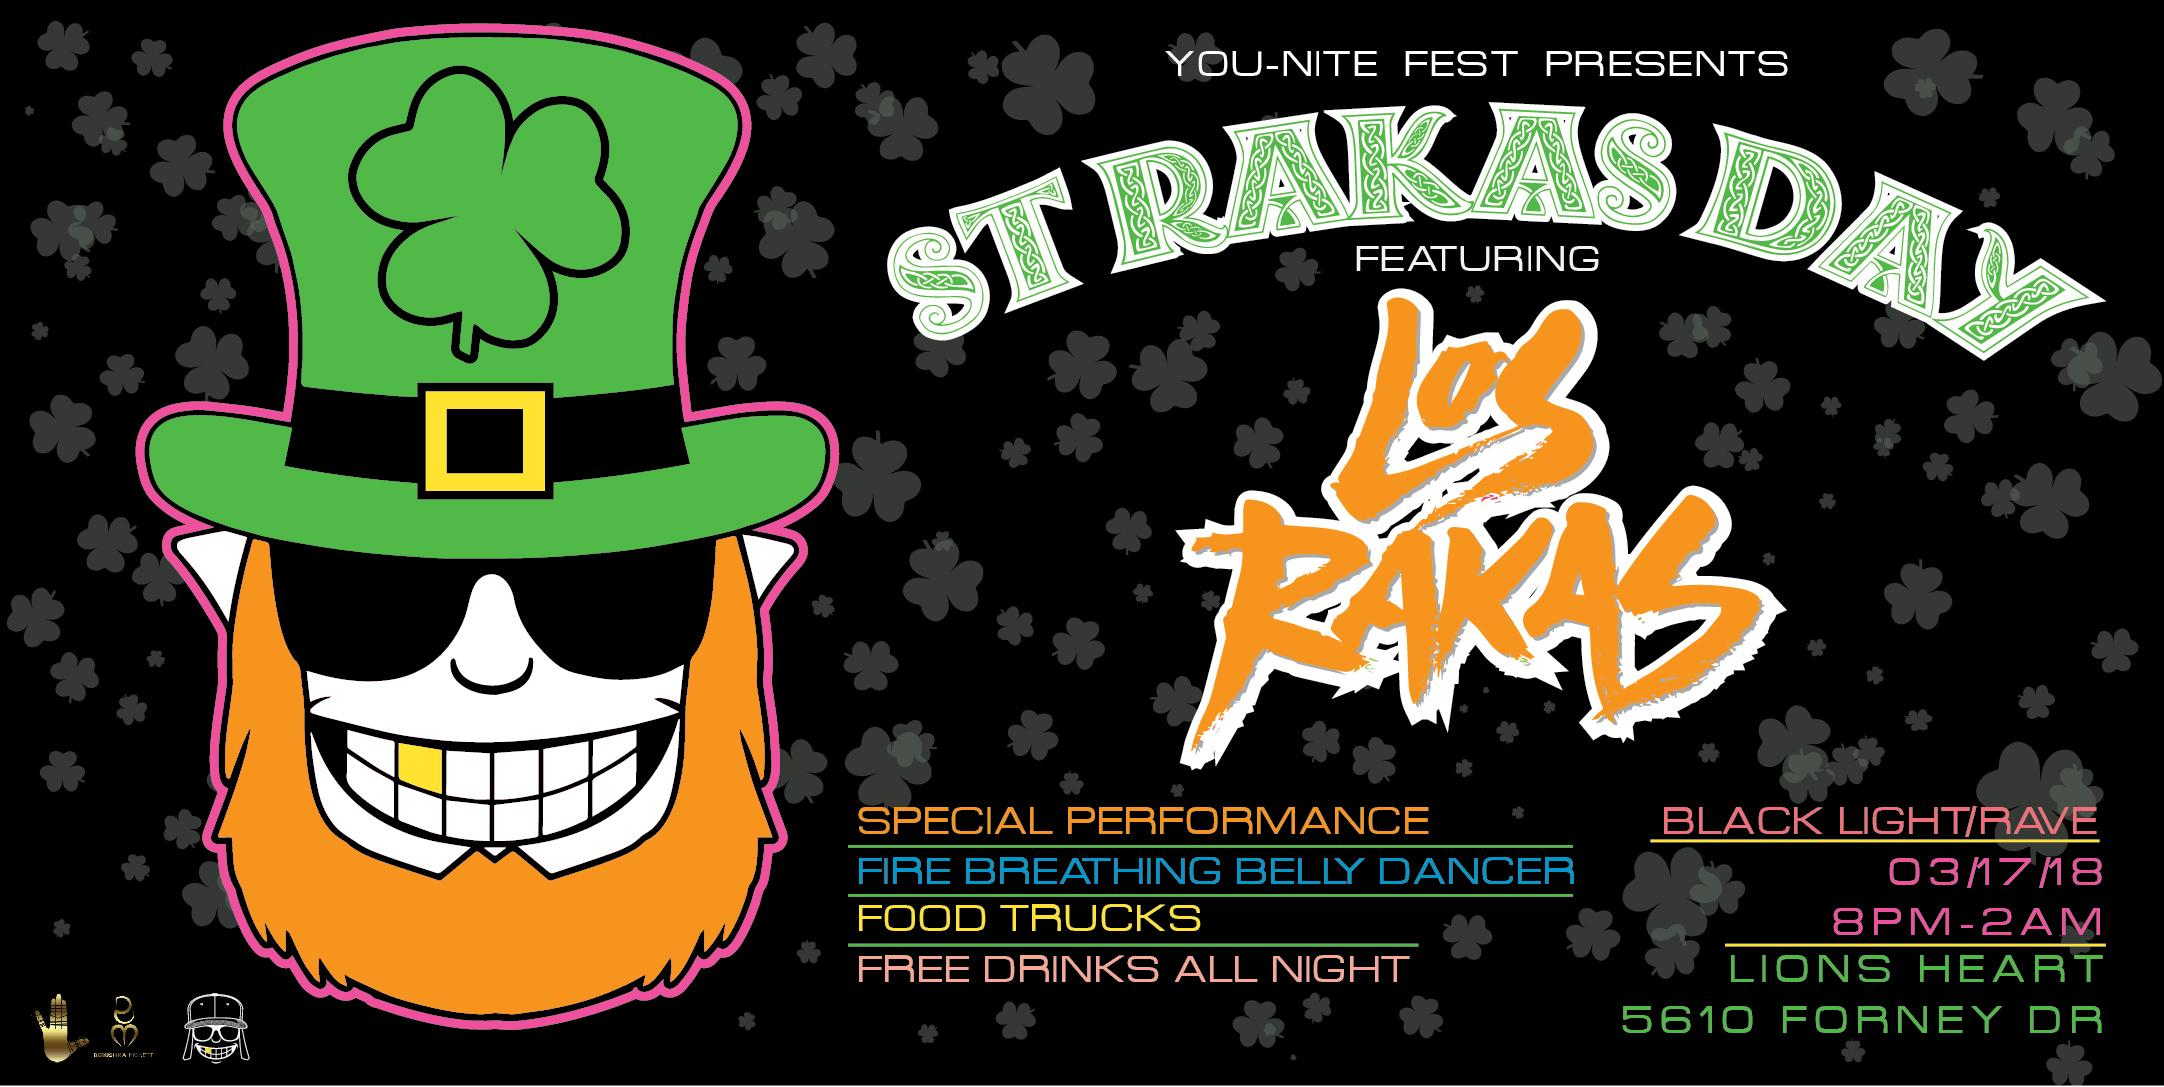 St Patrick's Day Houston March 17th St Rakas